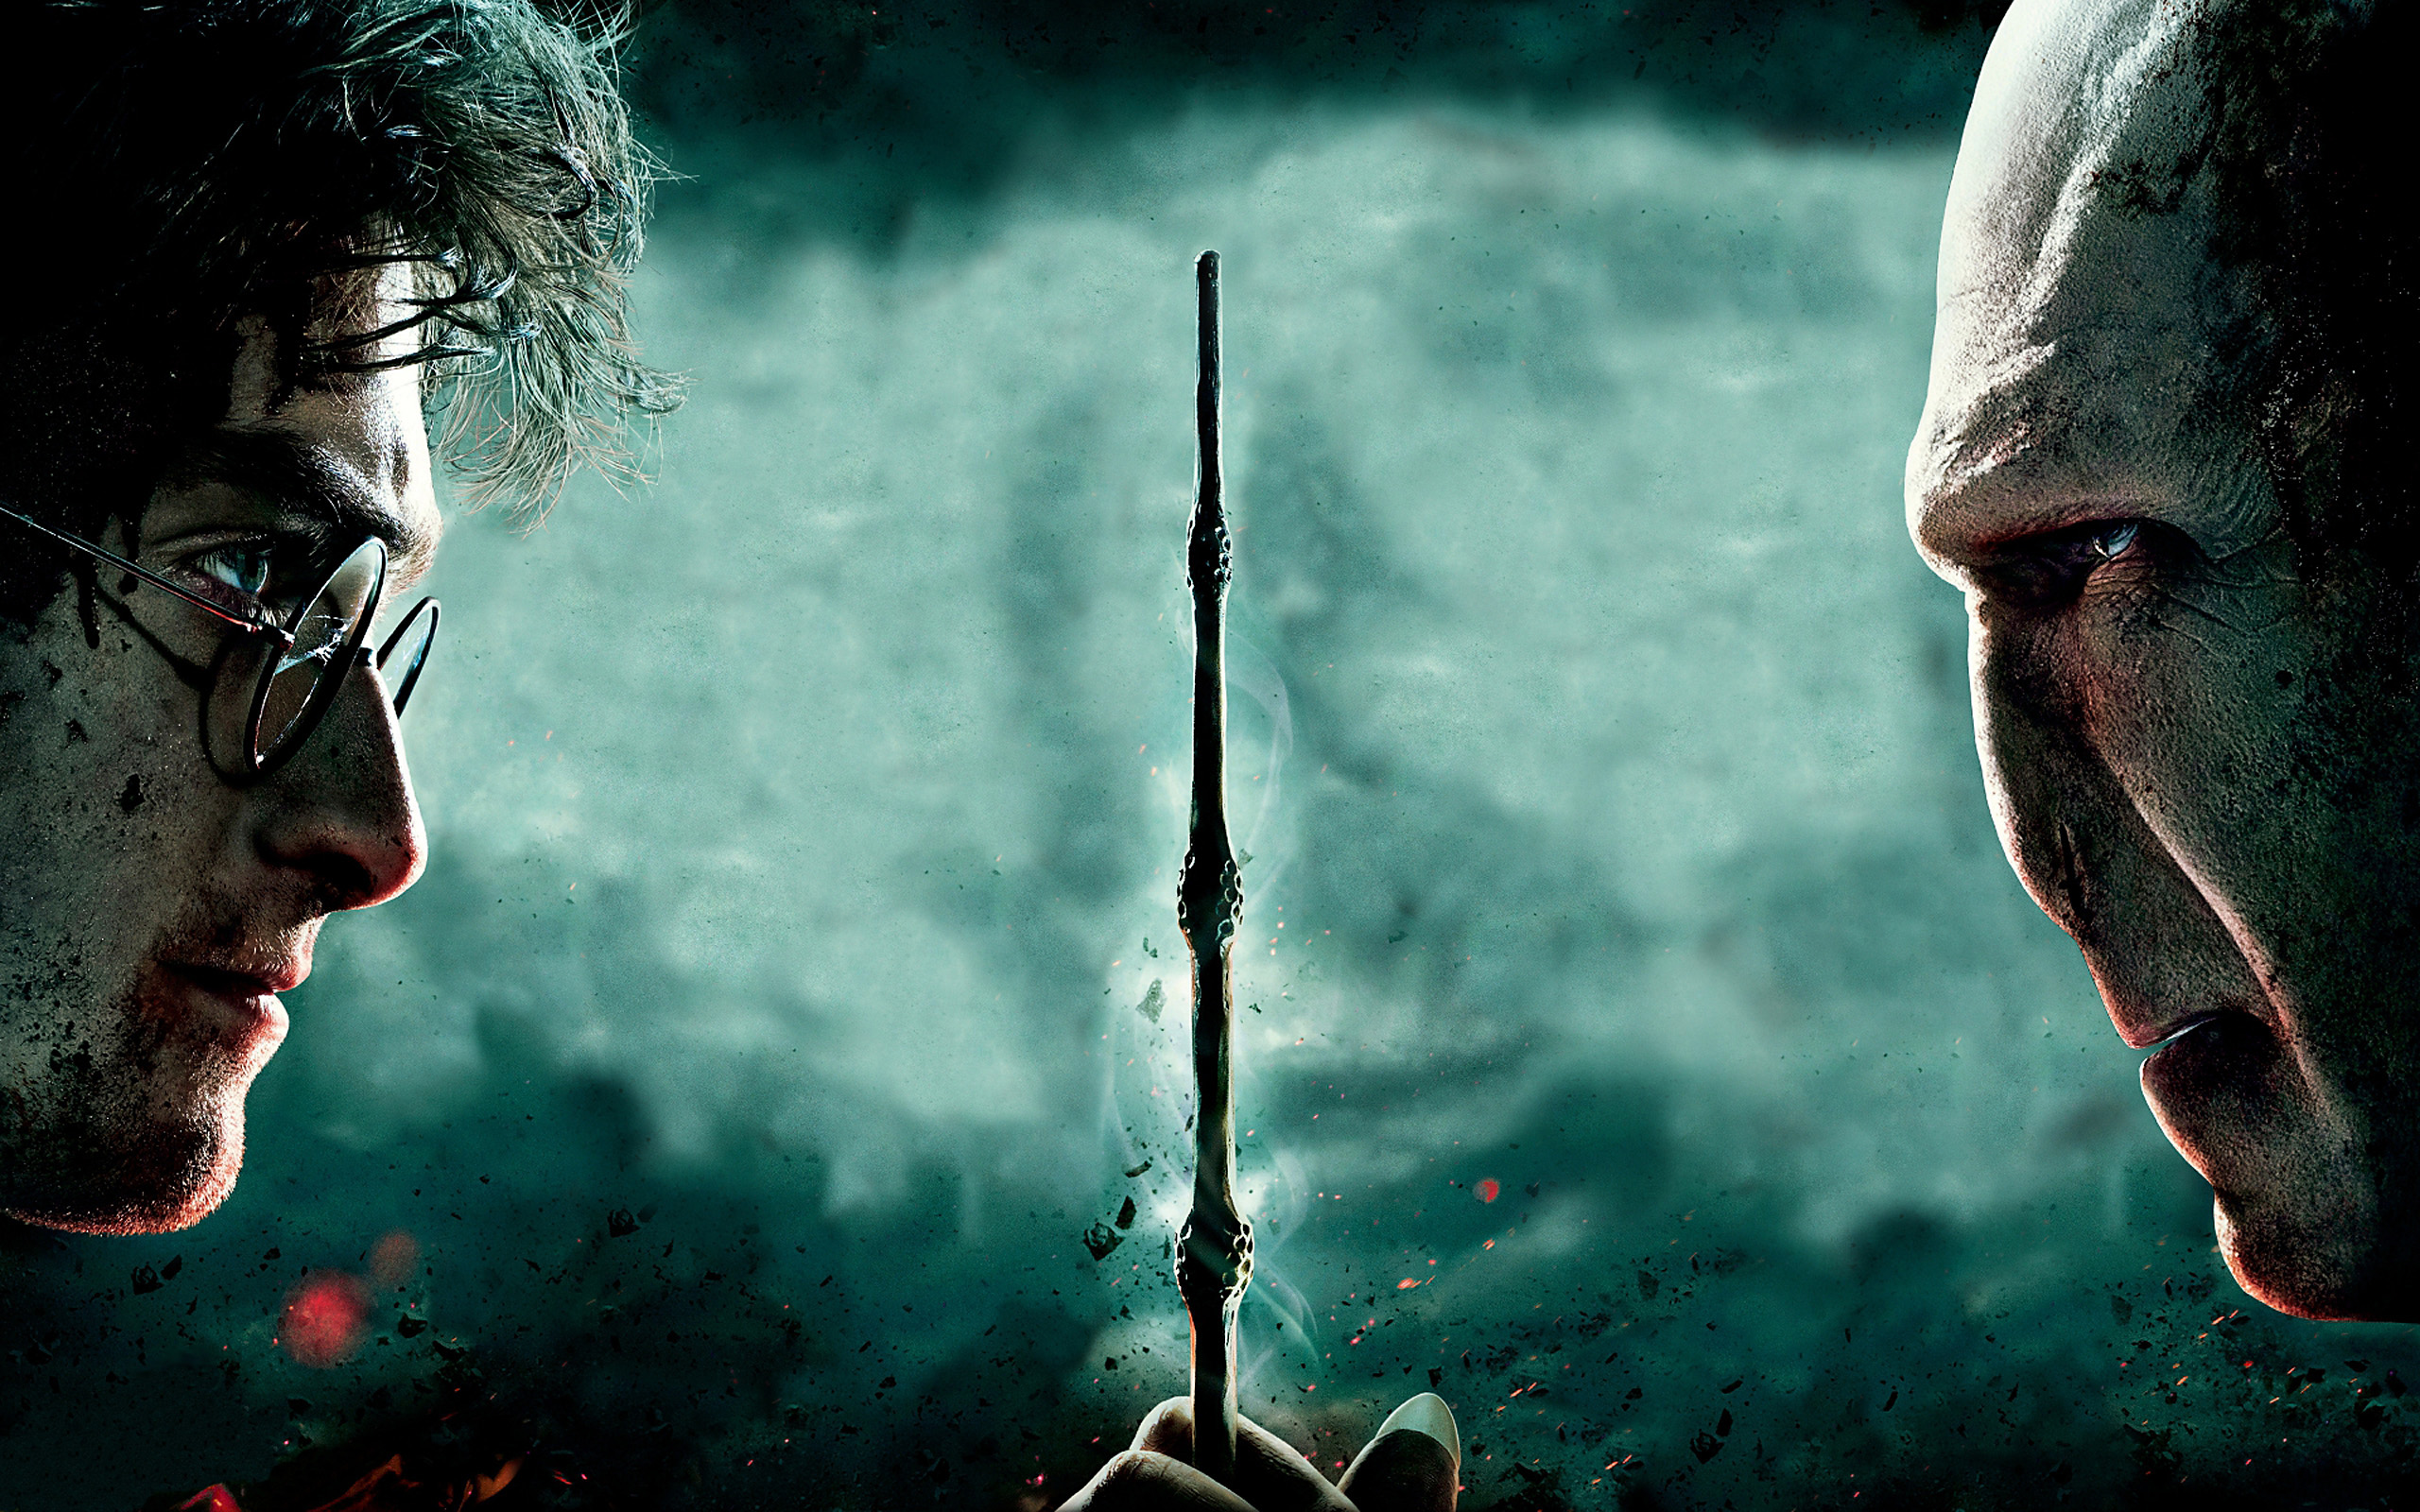 Fantastic Wallpaper Harry Potter Epic - harry-potter-lord-voldemort-wide-2560x1600-hp7  Photograph_964938.jpg